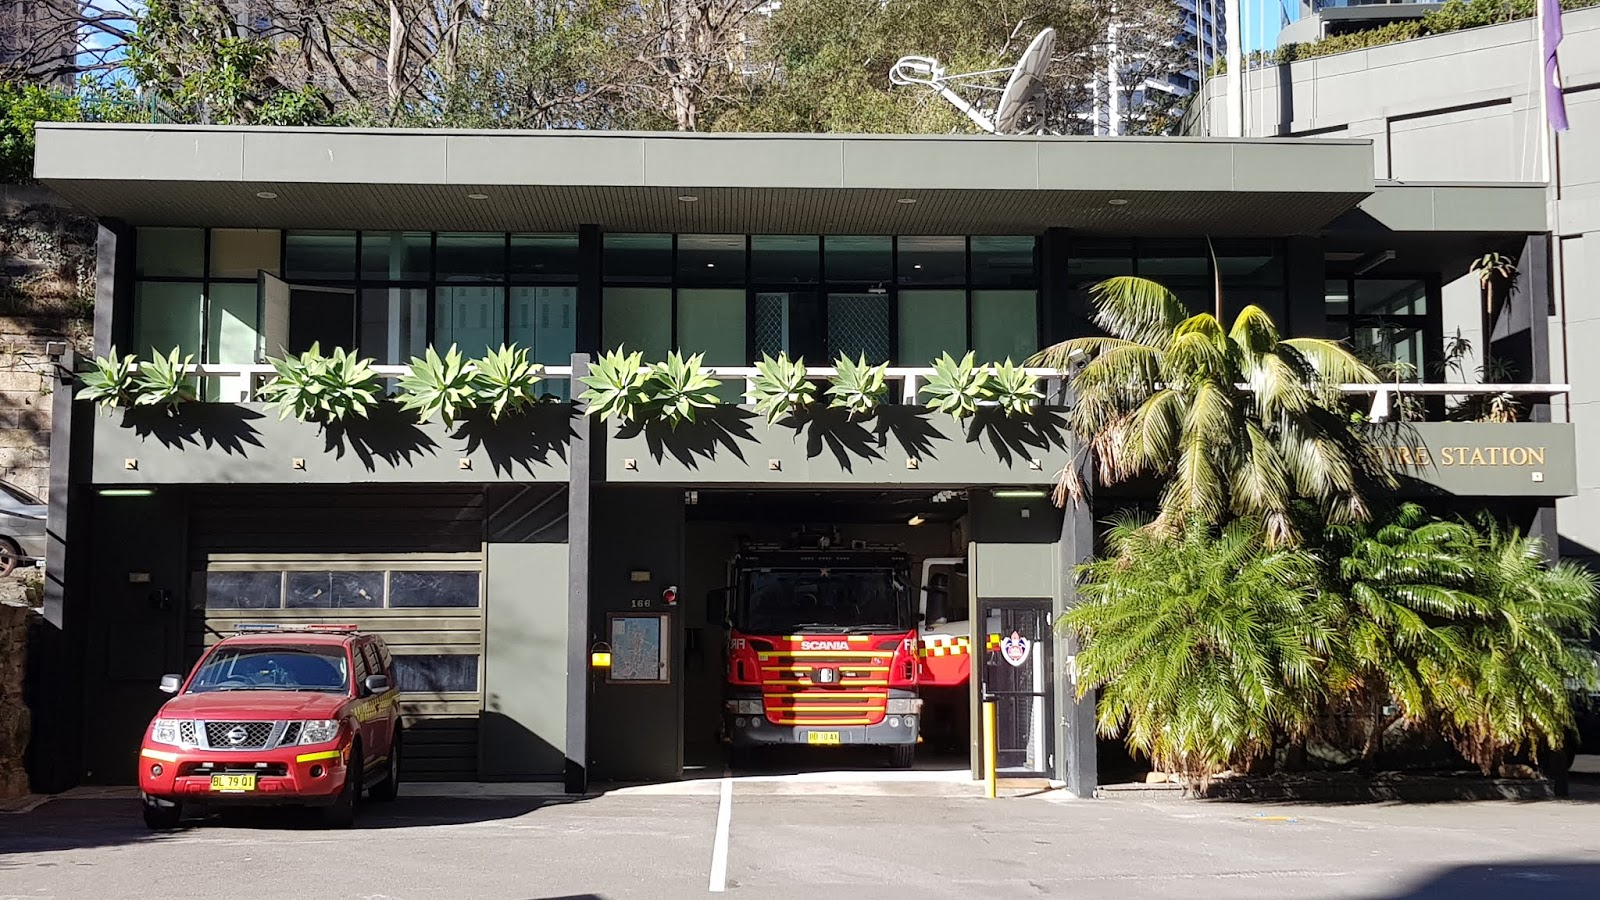 This fire station is located along kent street in the inner city suburb of millers point this contemporary building wouldnt look out of place as a modern